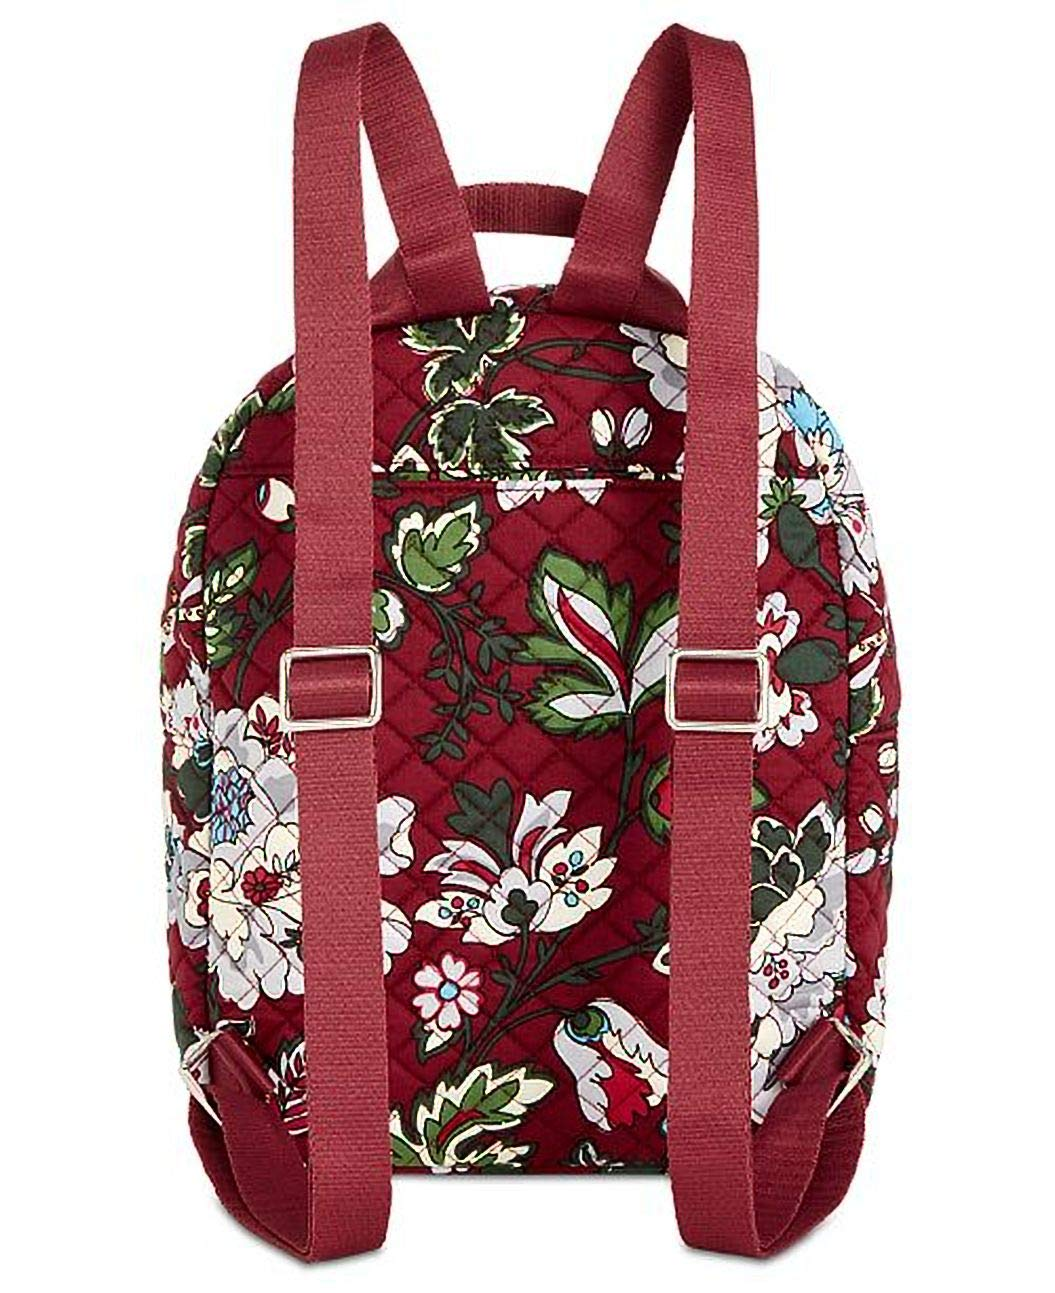 Bordeaux Blooms Iconic Leighton Backpack Signature Cotton